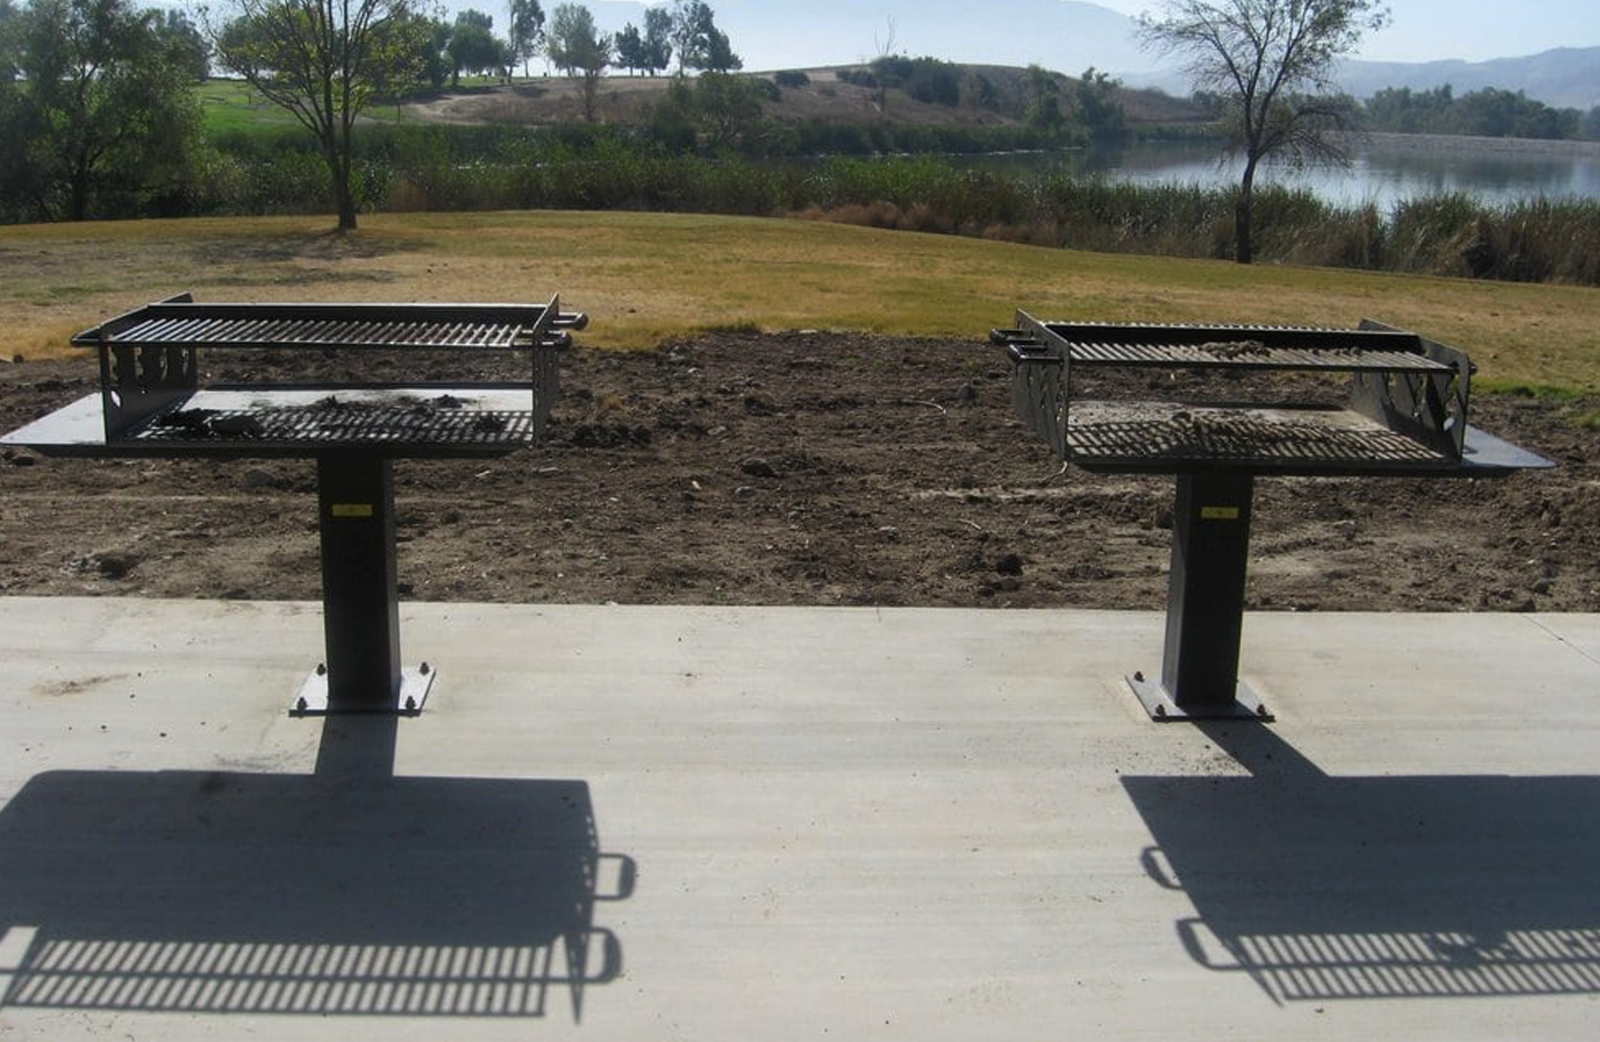 Barbecue grills at Prado park.